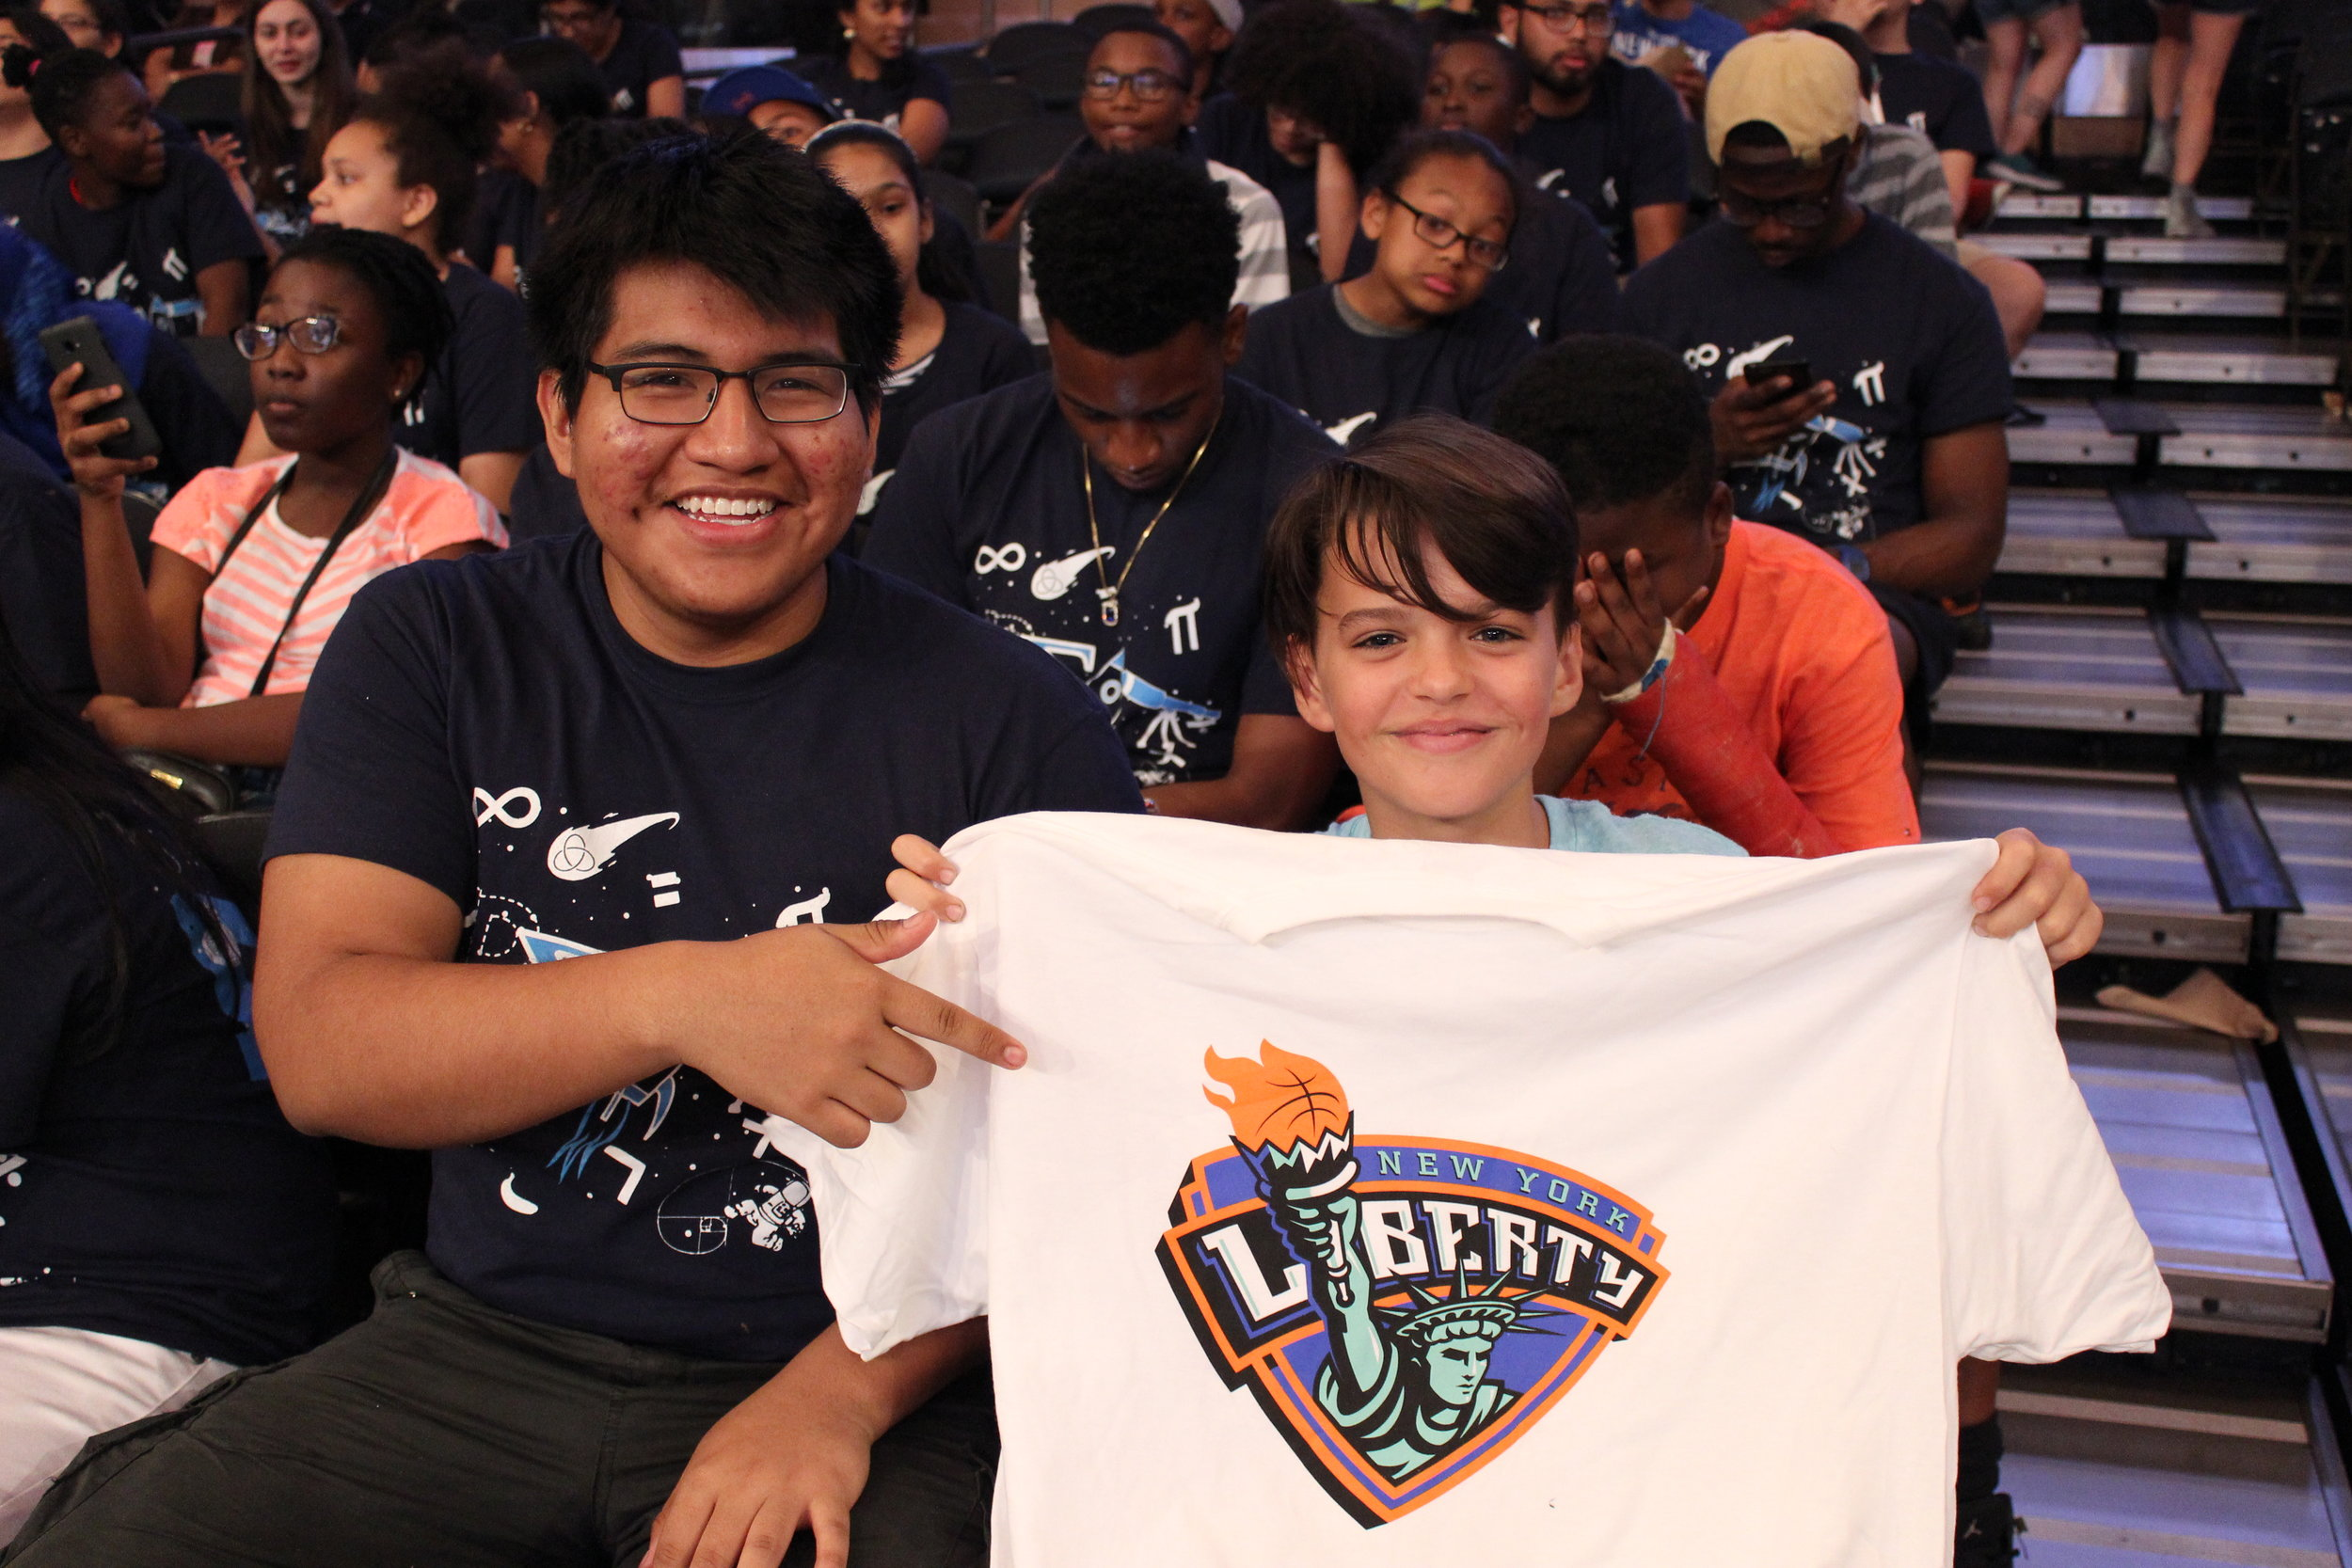 Junior Counselor Lennin and Eils pose for a photo with a NY Liberty T-shirt.